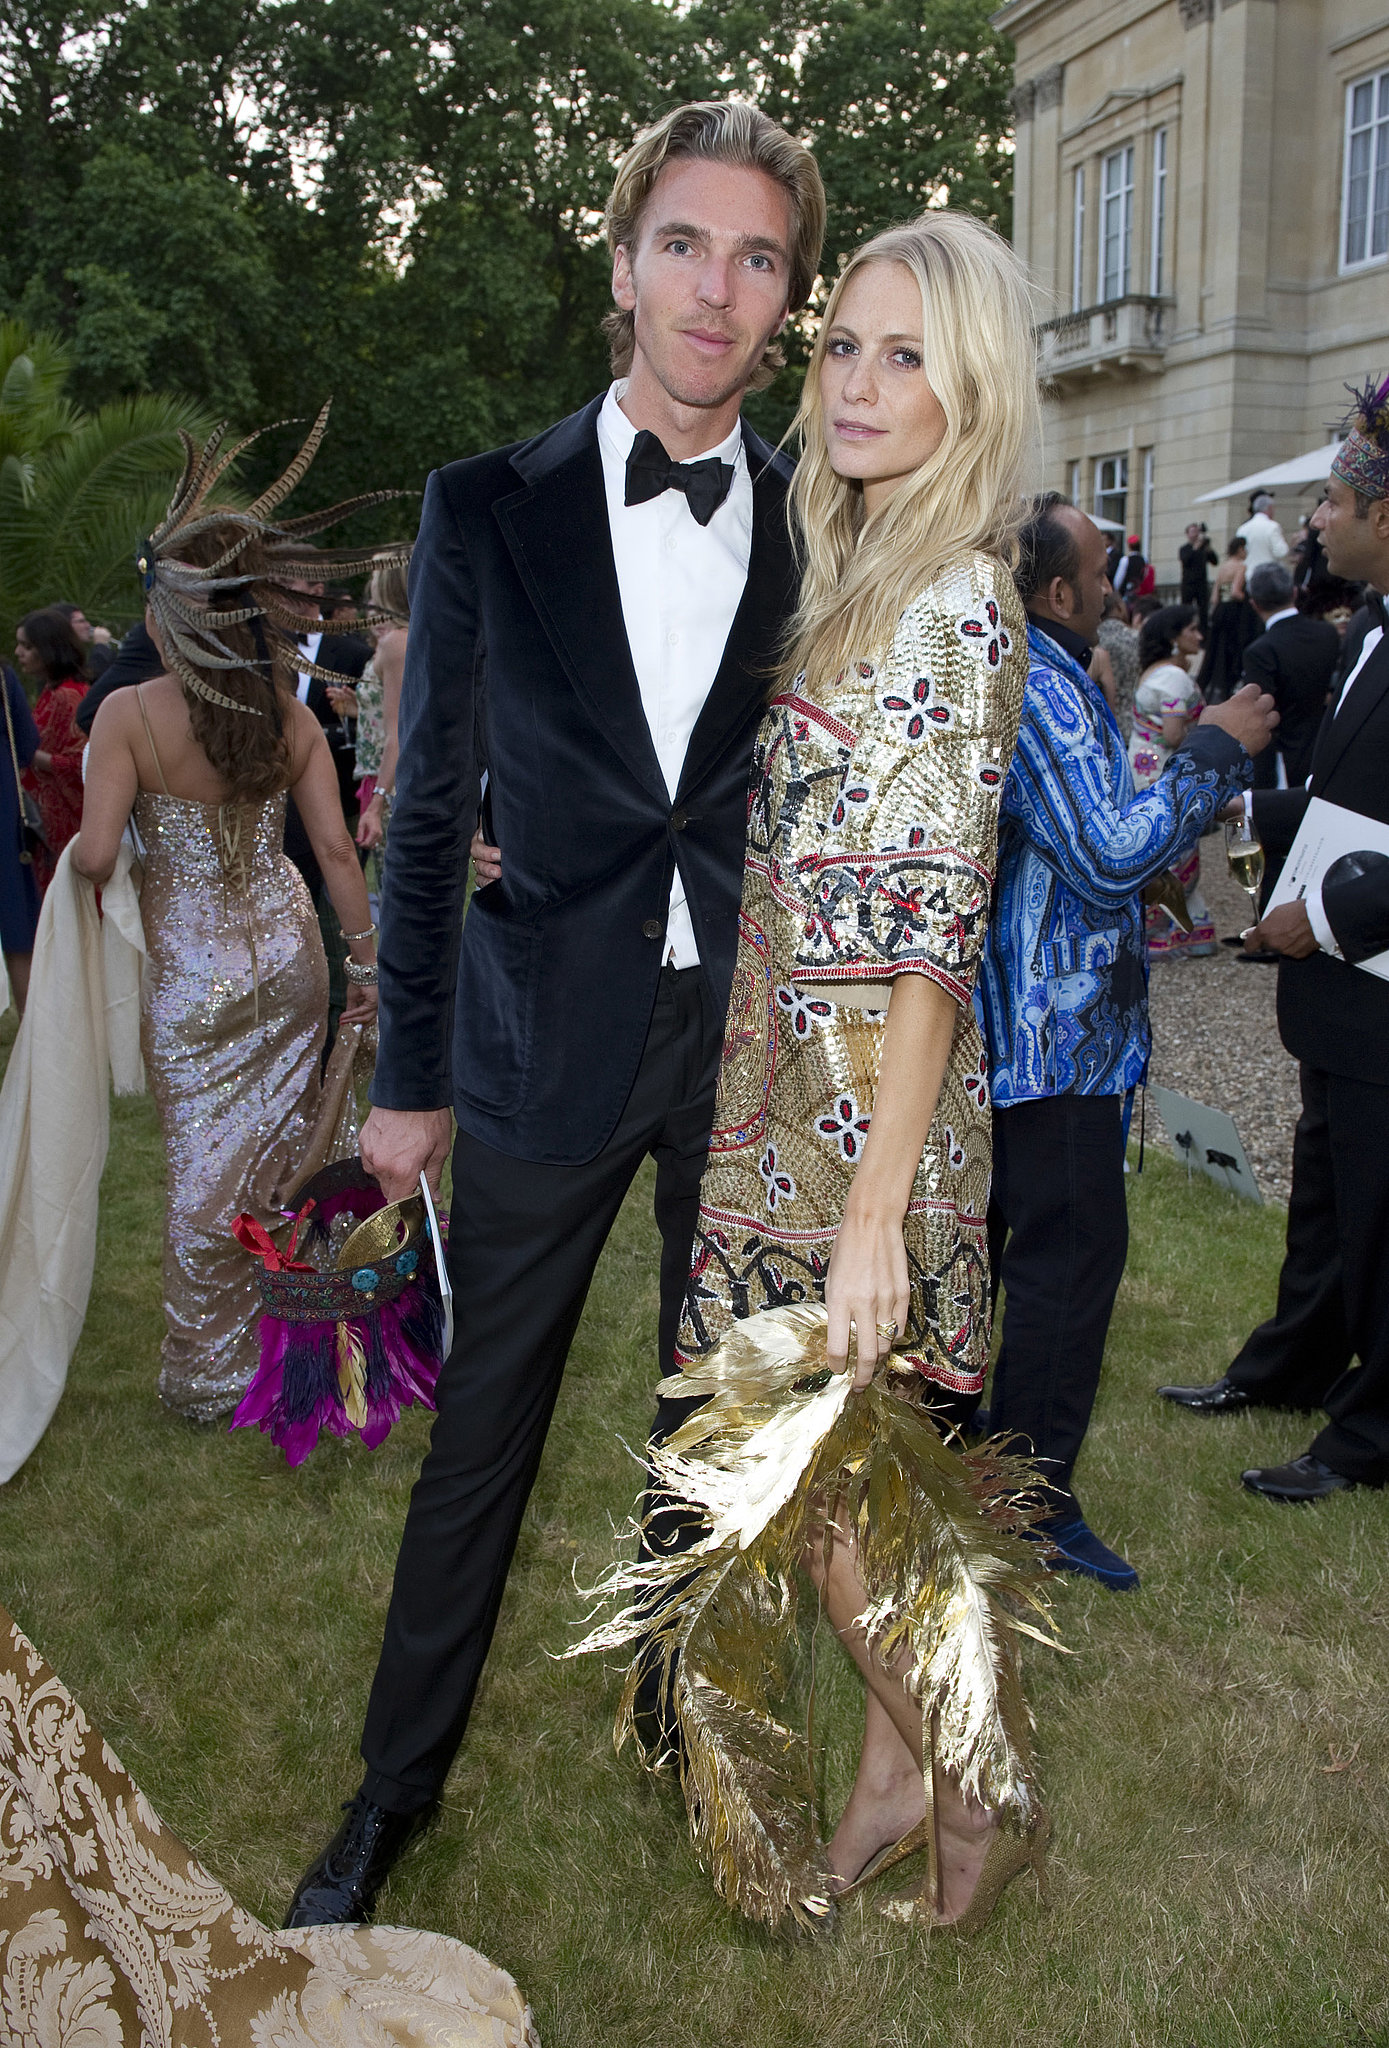 In keeping with The Animal Ball's theme, James Cook and Poppy Delevingne paired their ensembles with fe